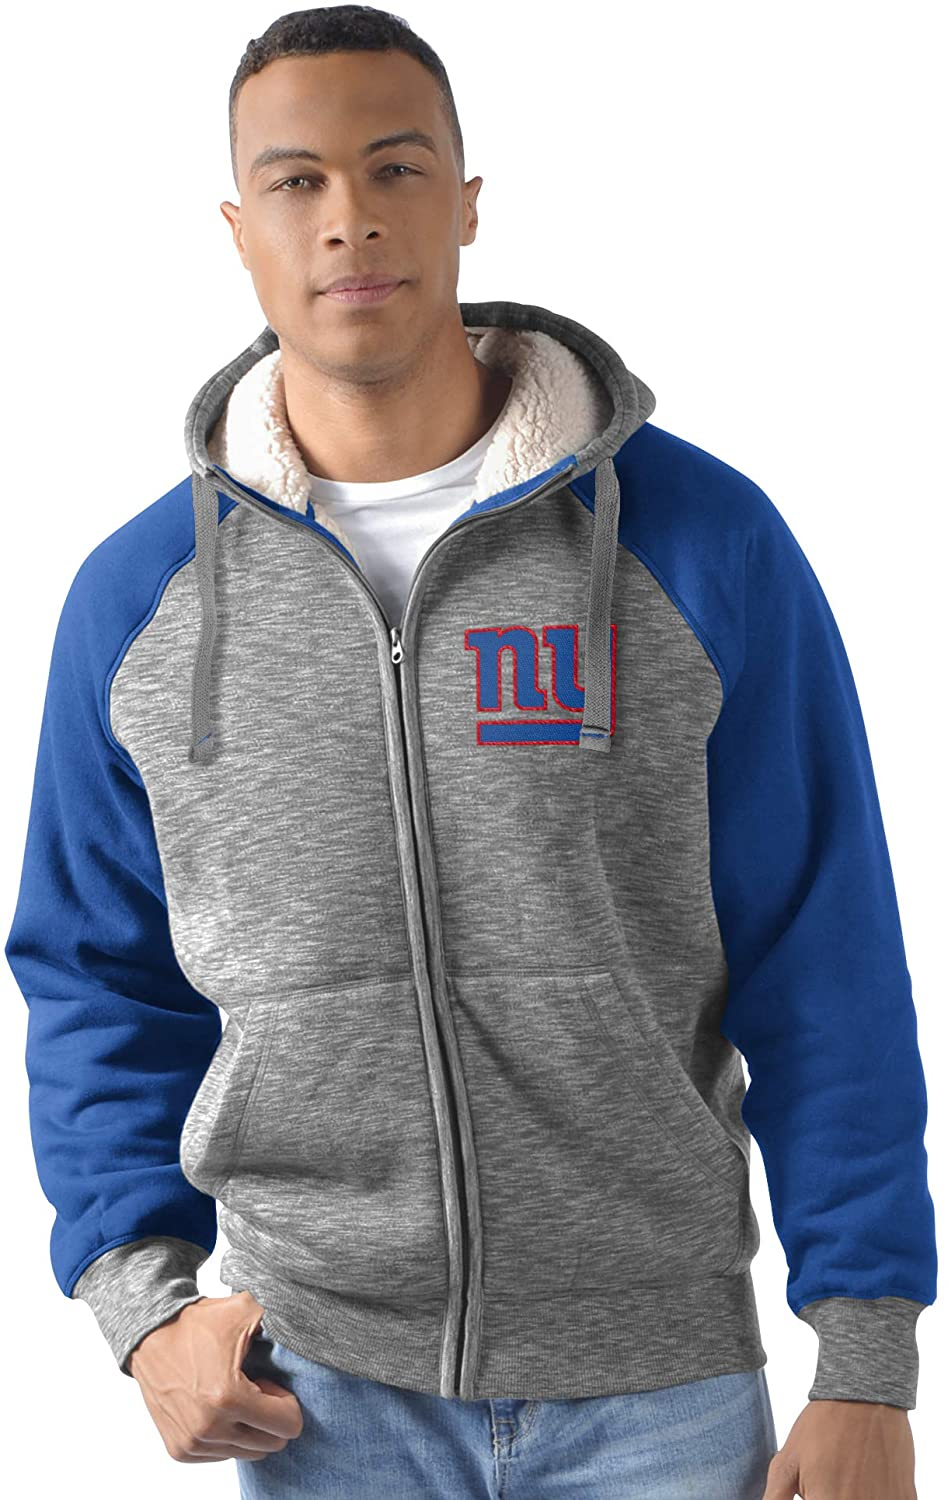 New York Giants Heathered Gray/Royal Turning Point Hooded Jacket by G-II (XXX-LARGE)